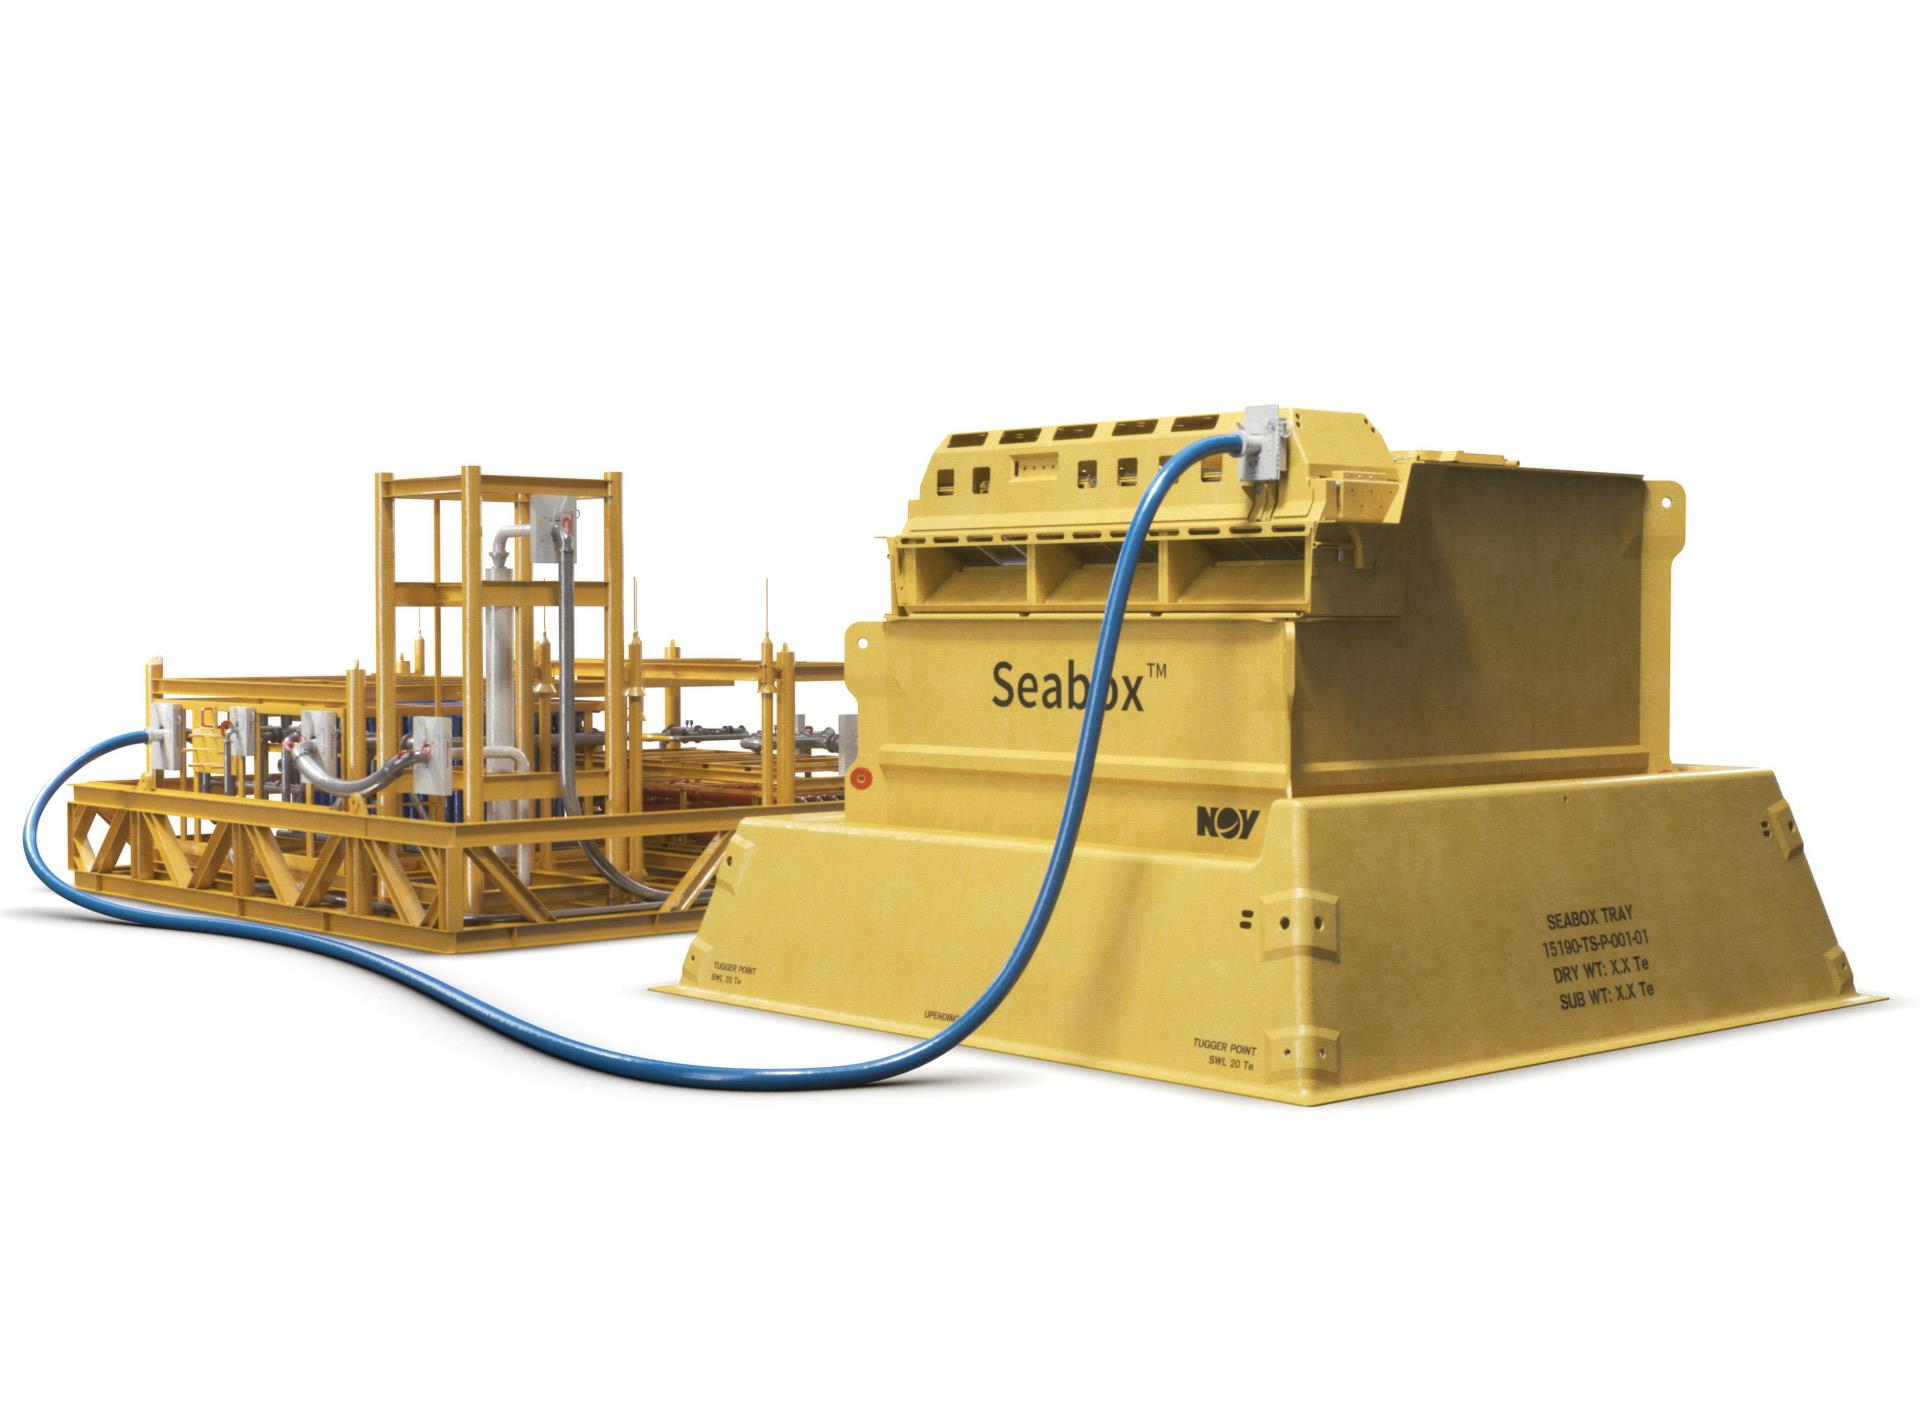 Rendering of the Seabox flow base, Ultrafiltration (UF) pump, and Reverse Osmosis (RO) skid